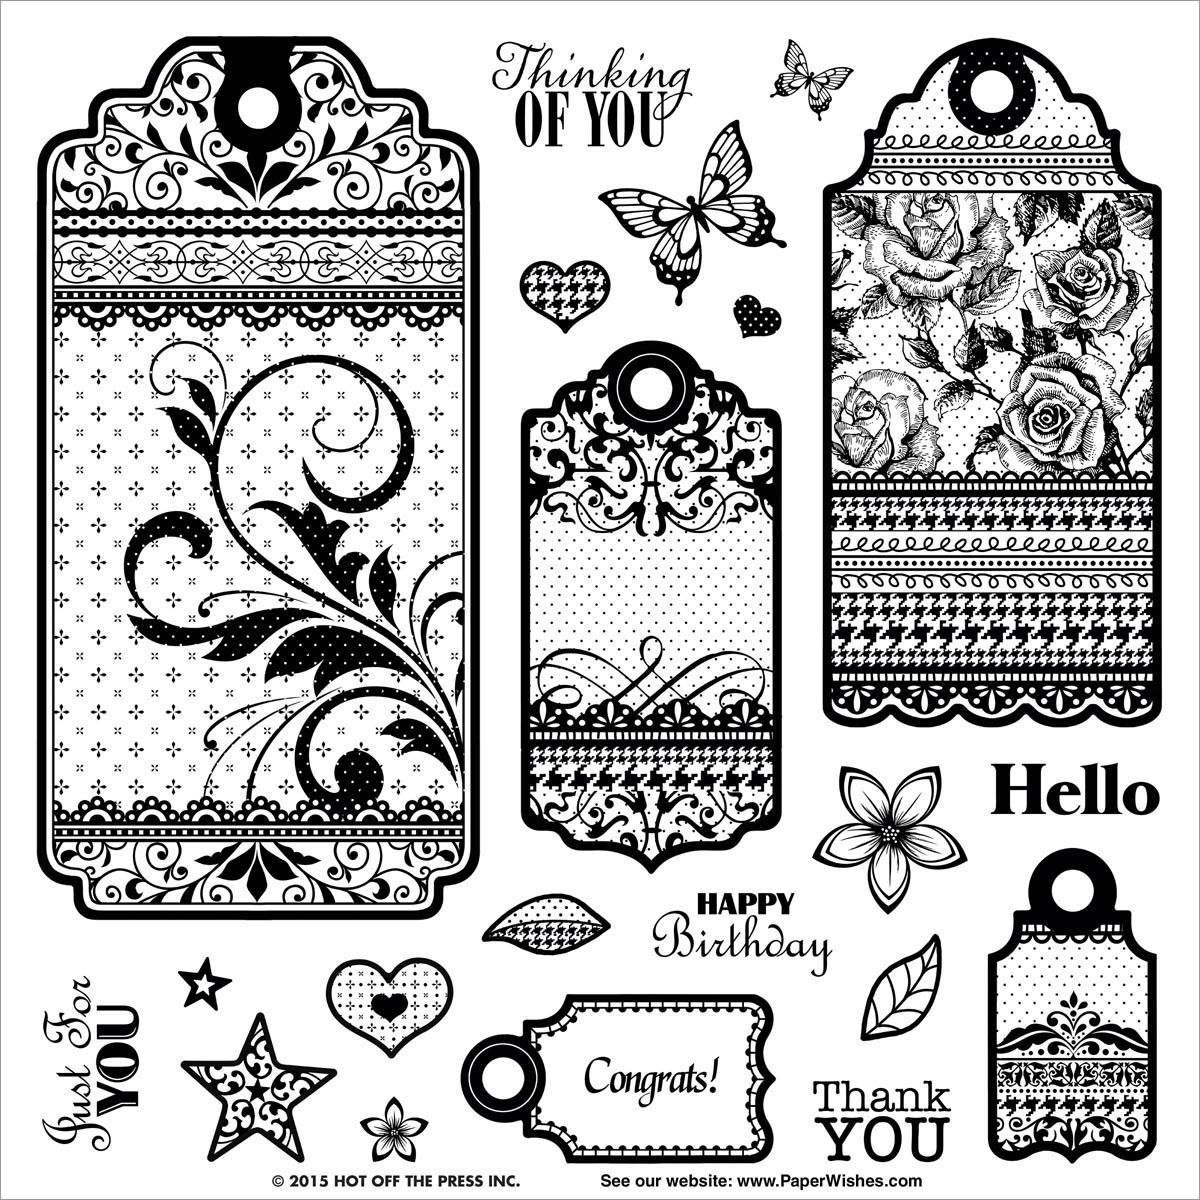 Hot Off The Press Acrylic Stamps 8 Inch X 8 Inch Sheet-Tags & Trim